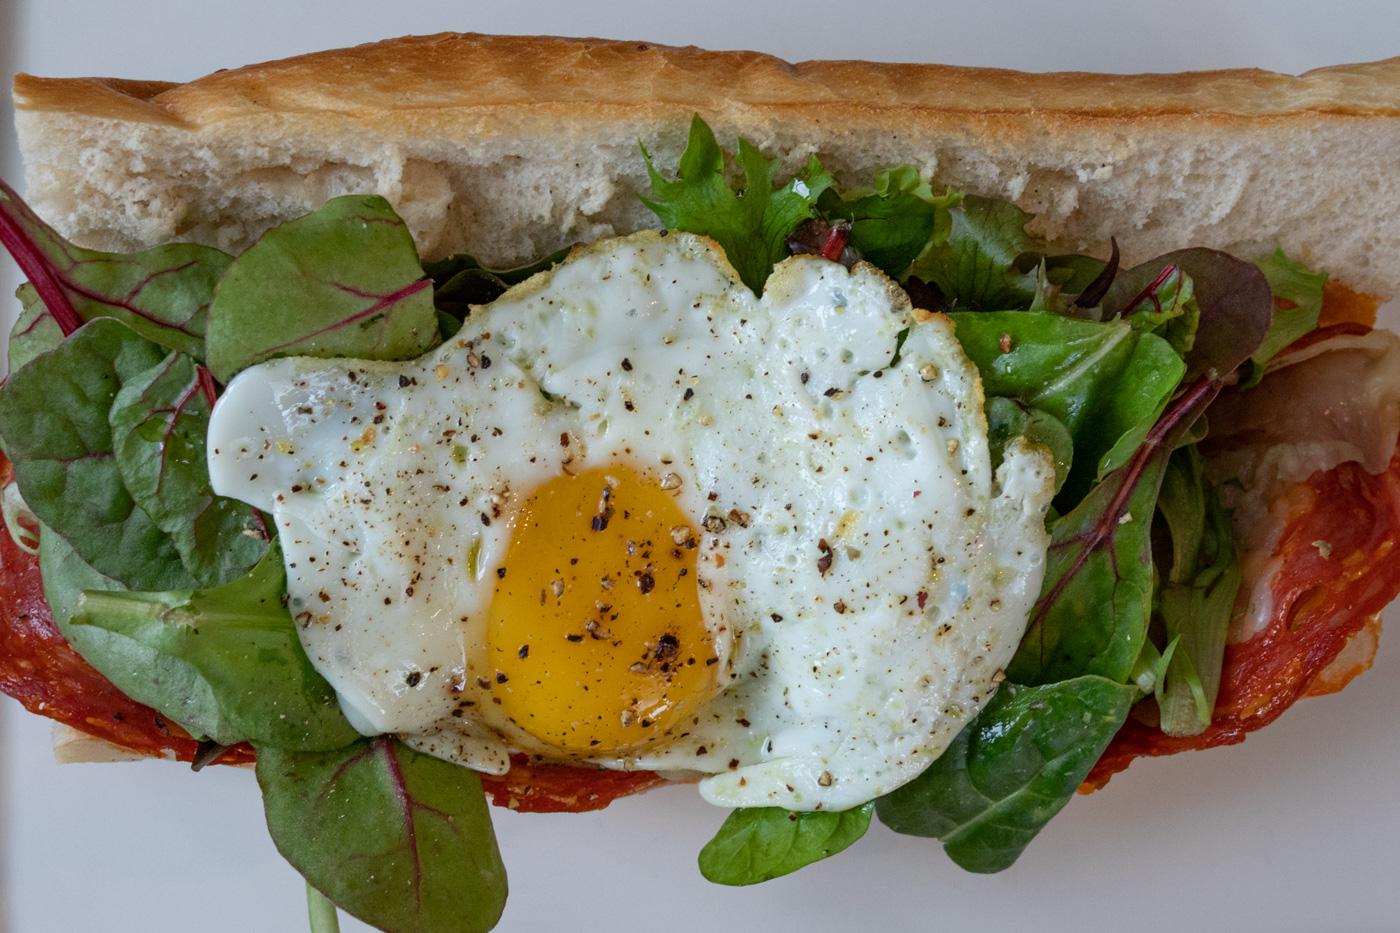 Chorizo, Manchego, Greens, and Egg Sandwich from Cafe Lutecia